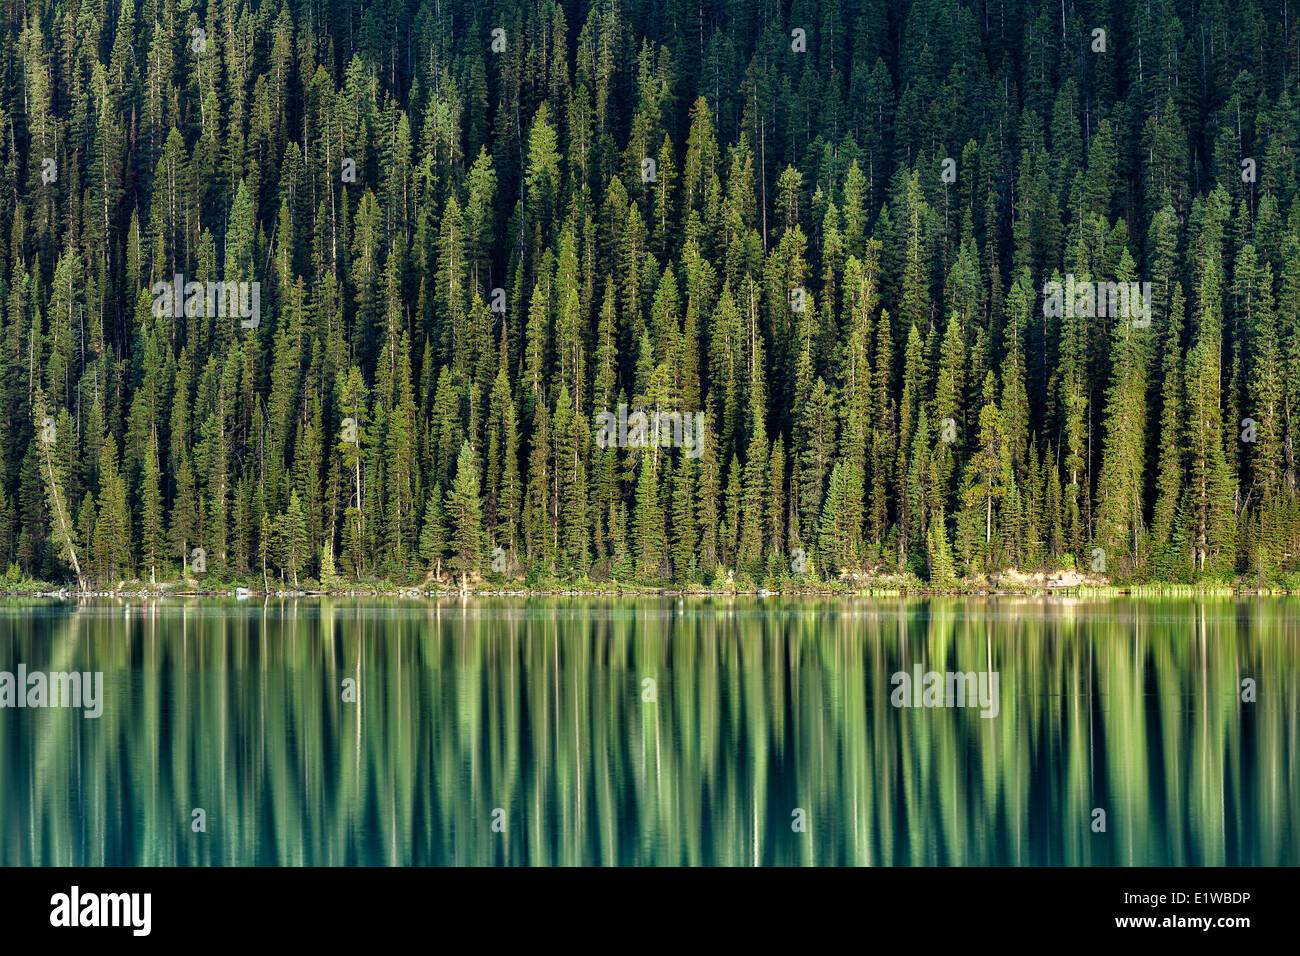 Evergreen trees reflection, Lake Louise, Banff National Park, Alberta, Canada - Stock Image